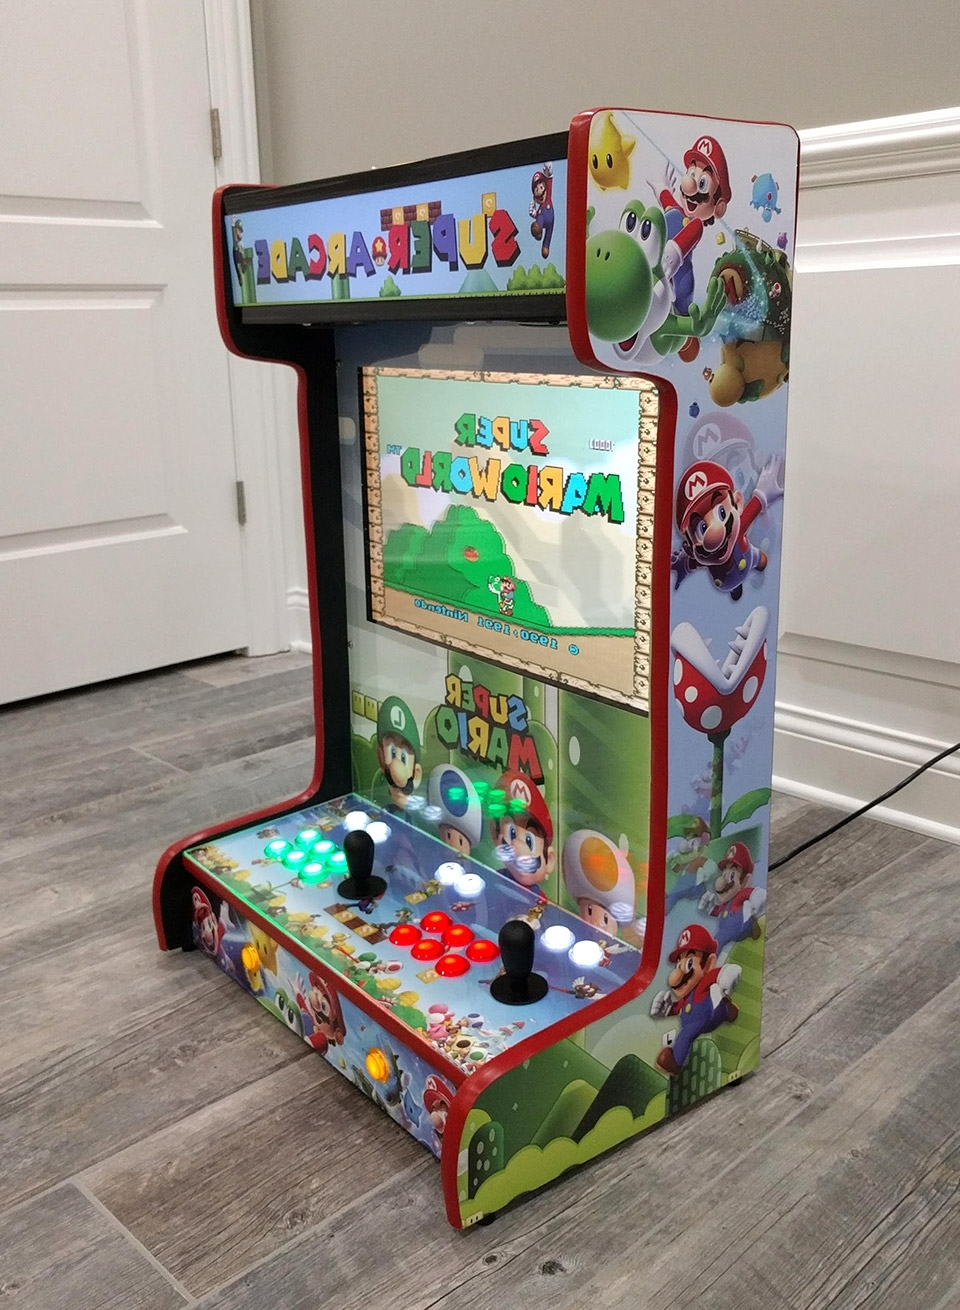 Widely Used These Wall Mounted Arcade Cabinets Save Quarters And Space – Technabob Pertaining To Arcade Wall Art (View 15 of 15)